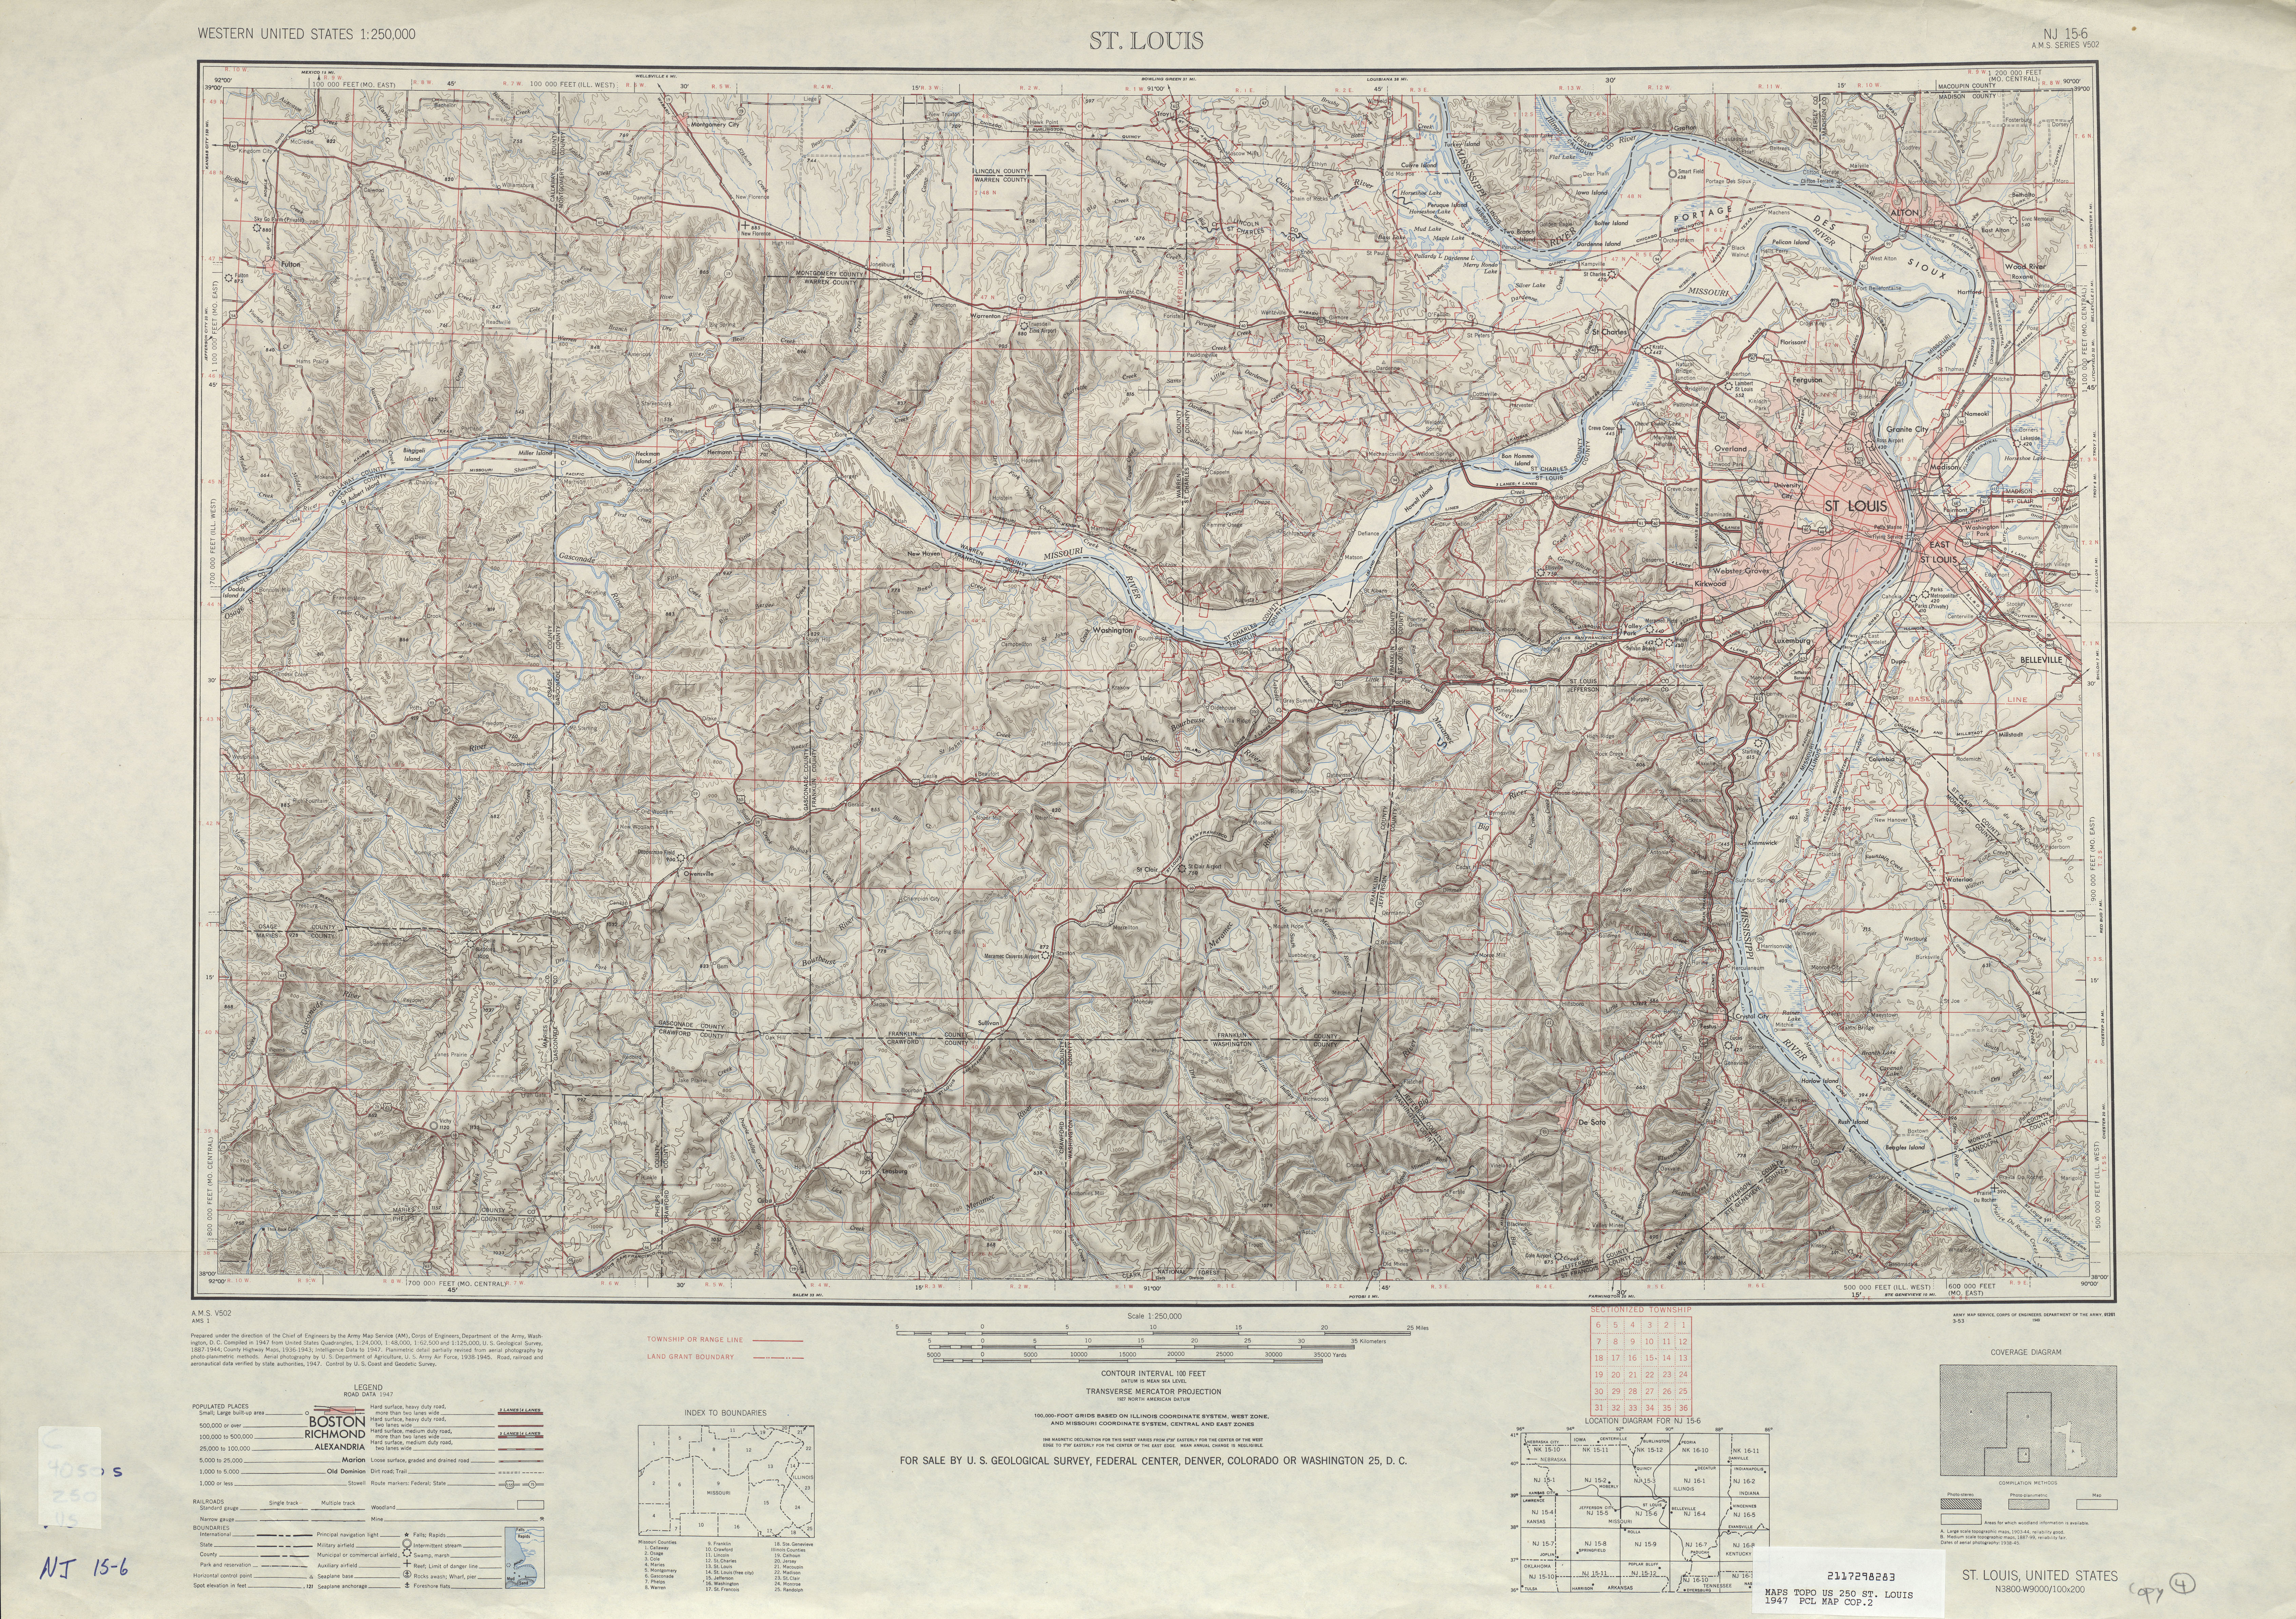 Saint Louis Topographic Map Sheet, United States 1947